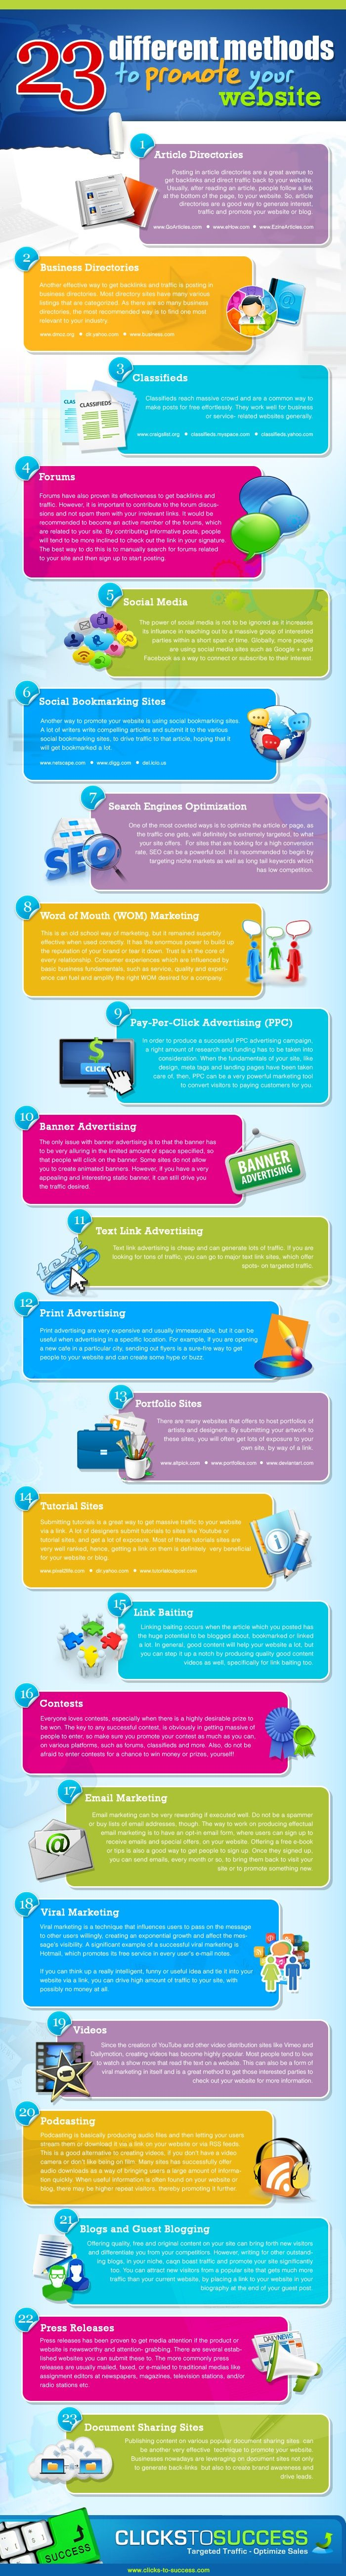 A short examination of the business of advertising